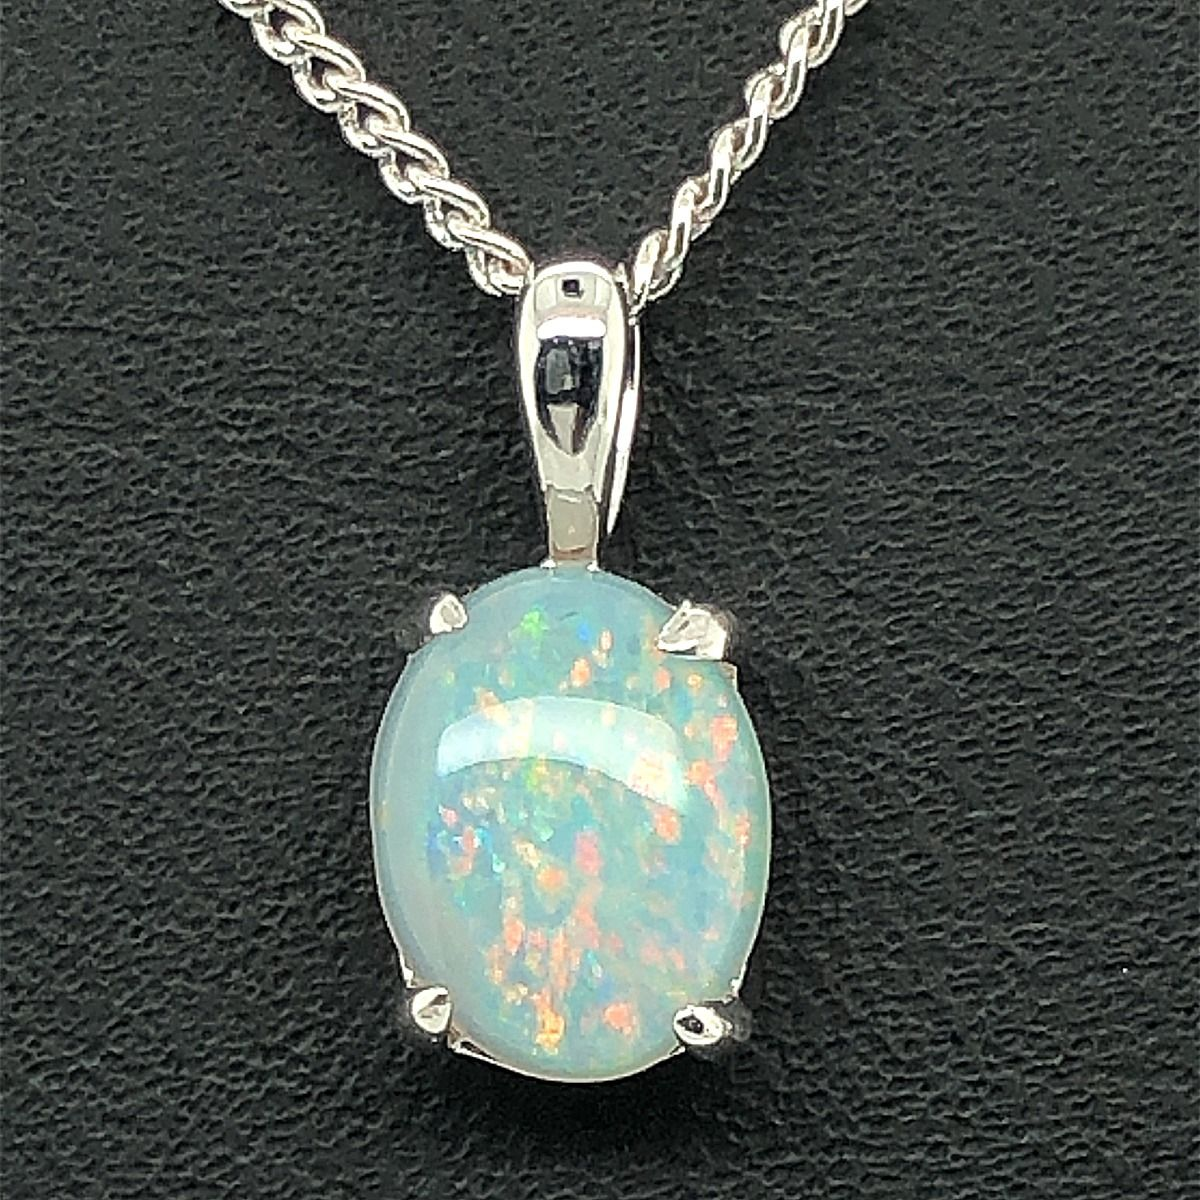 14ct White gold solid opal pendant (9mmx7mm)